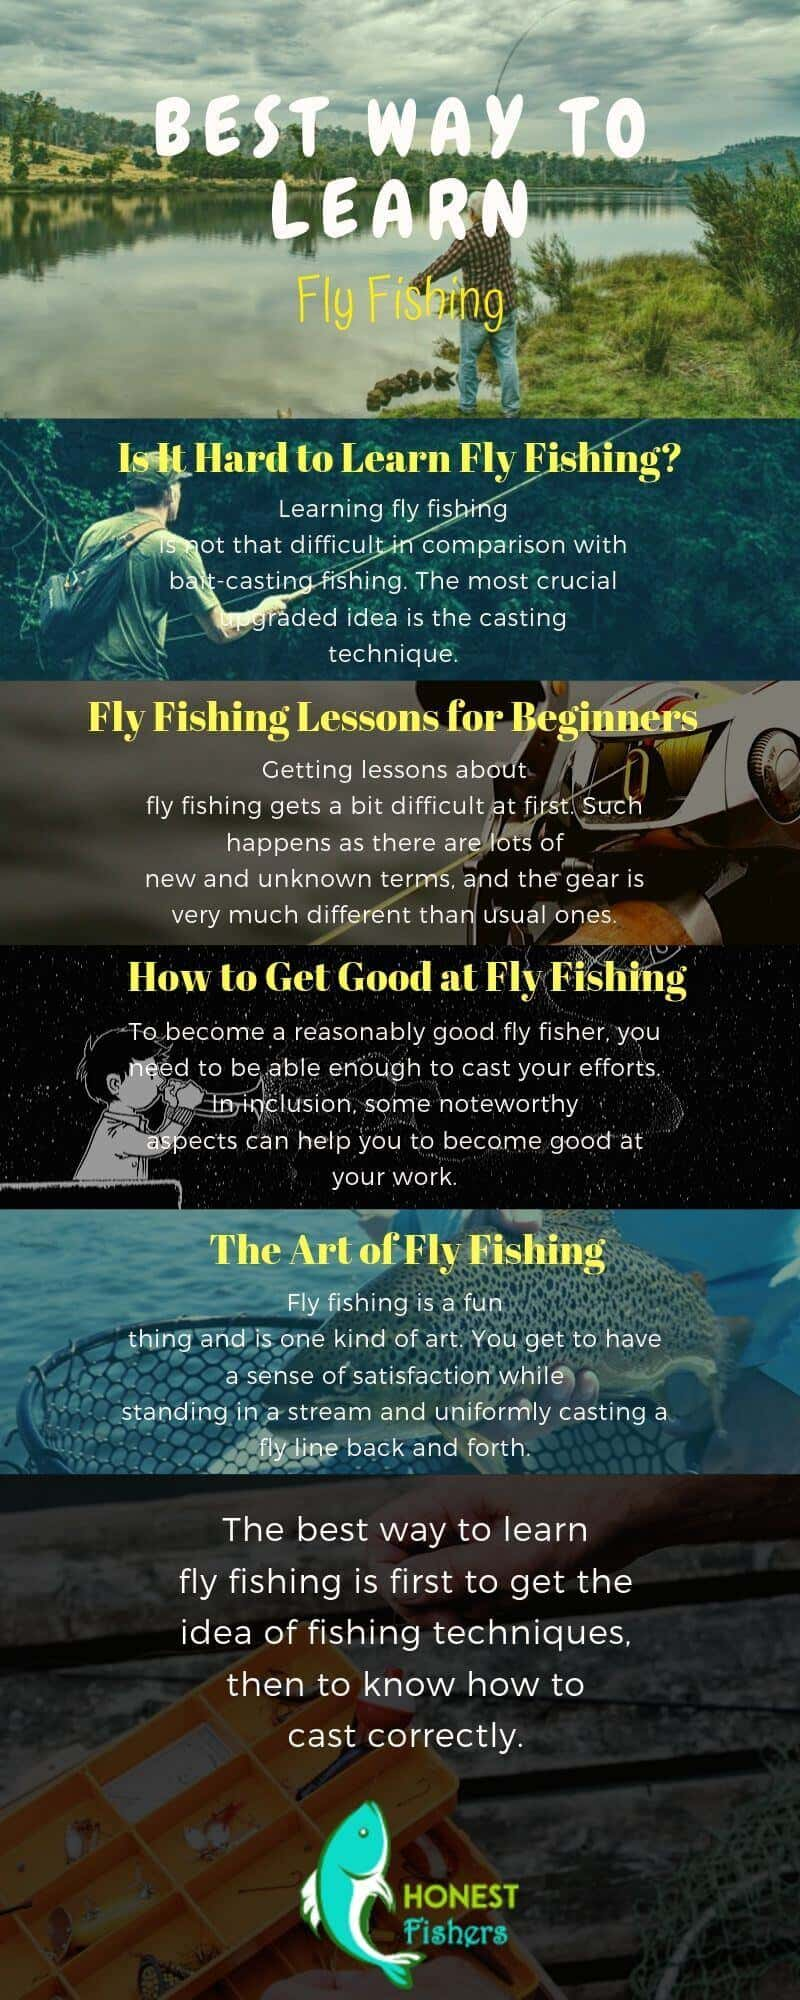 Best Way to Learn Fly Fishing Infographic